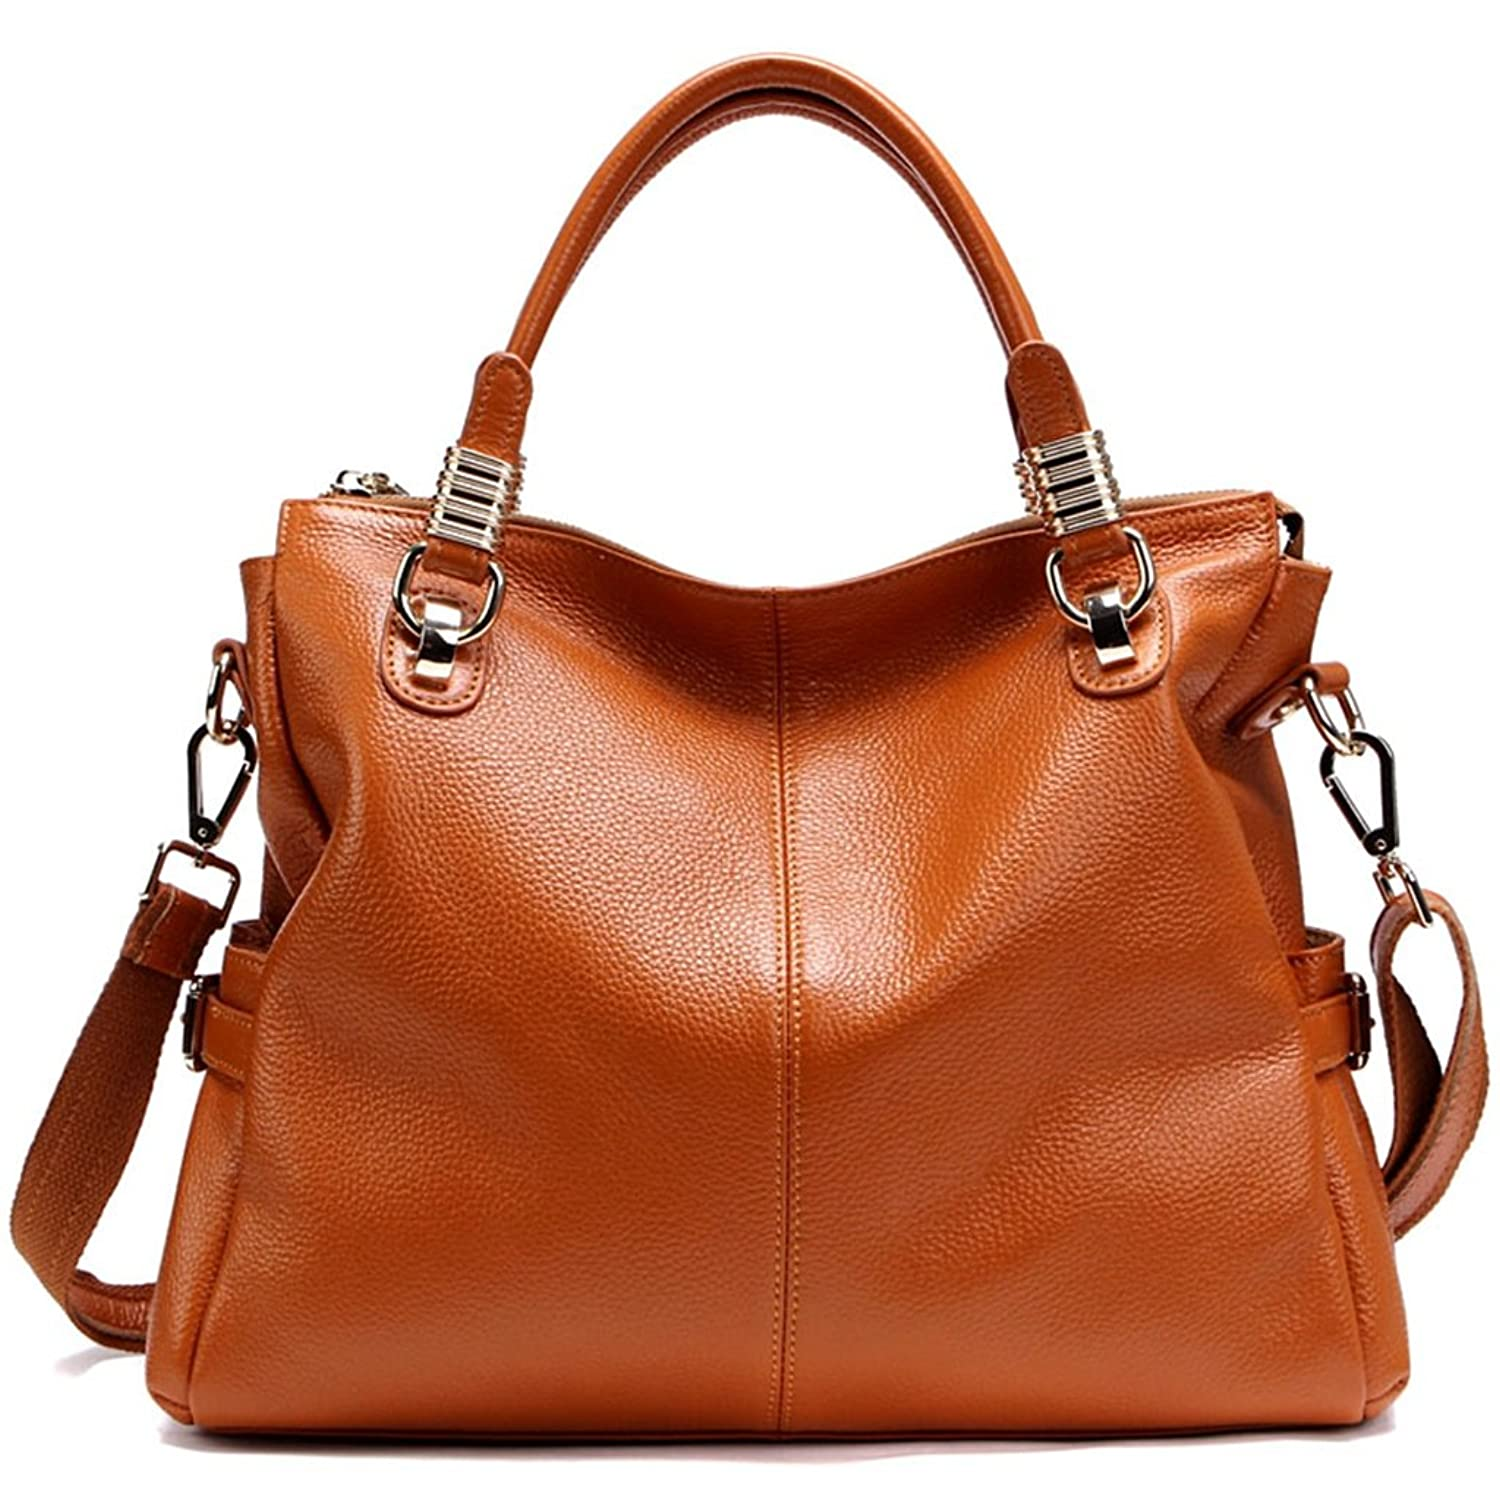 Women's First Layer Cowhide Leather Hobo Tote purse Satchel Vintage Handbag/Shoulder Strap